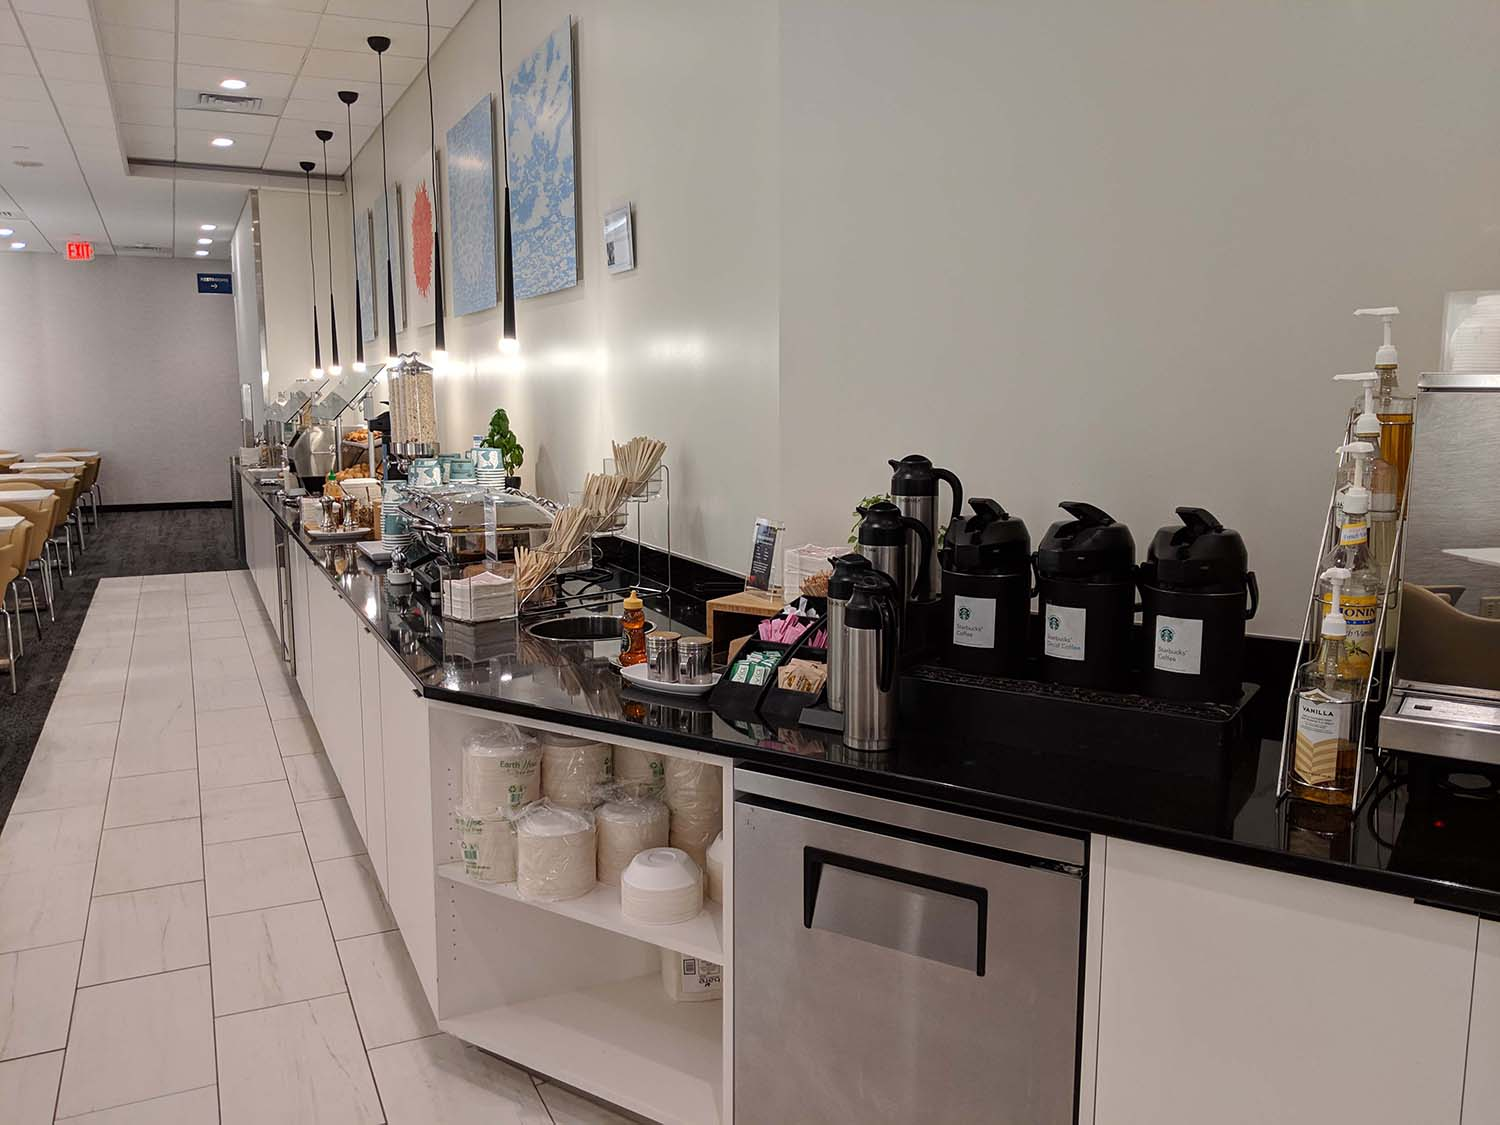 Delta Sky club in Fort lauderdale food